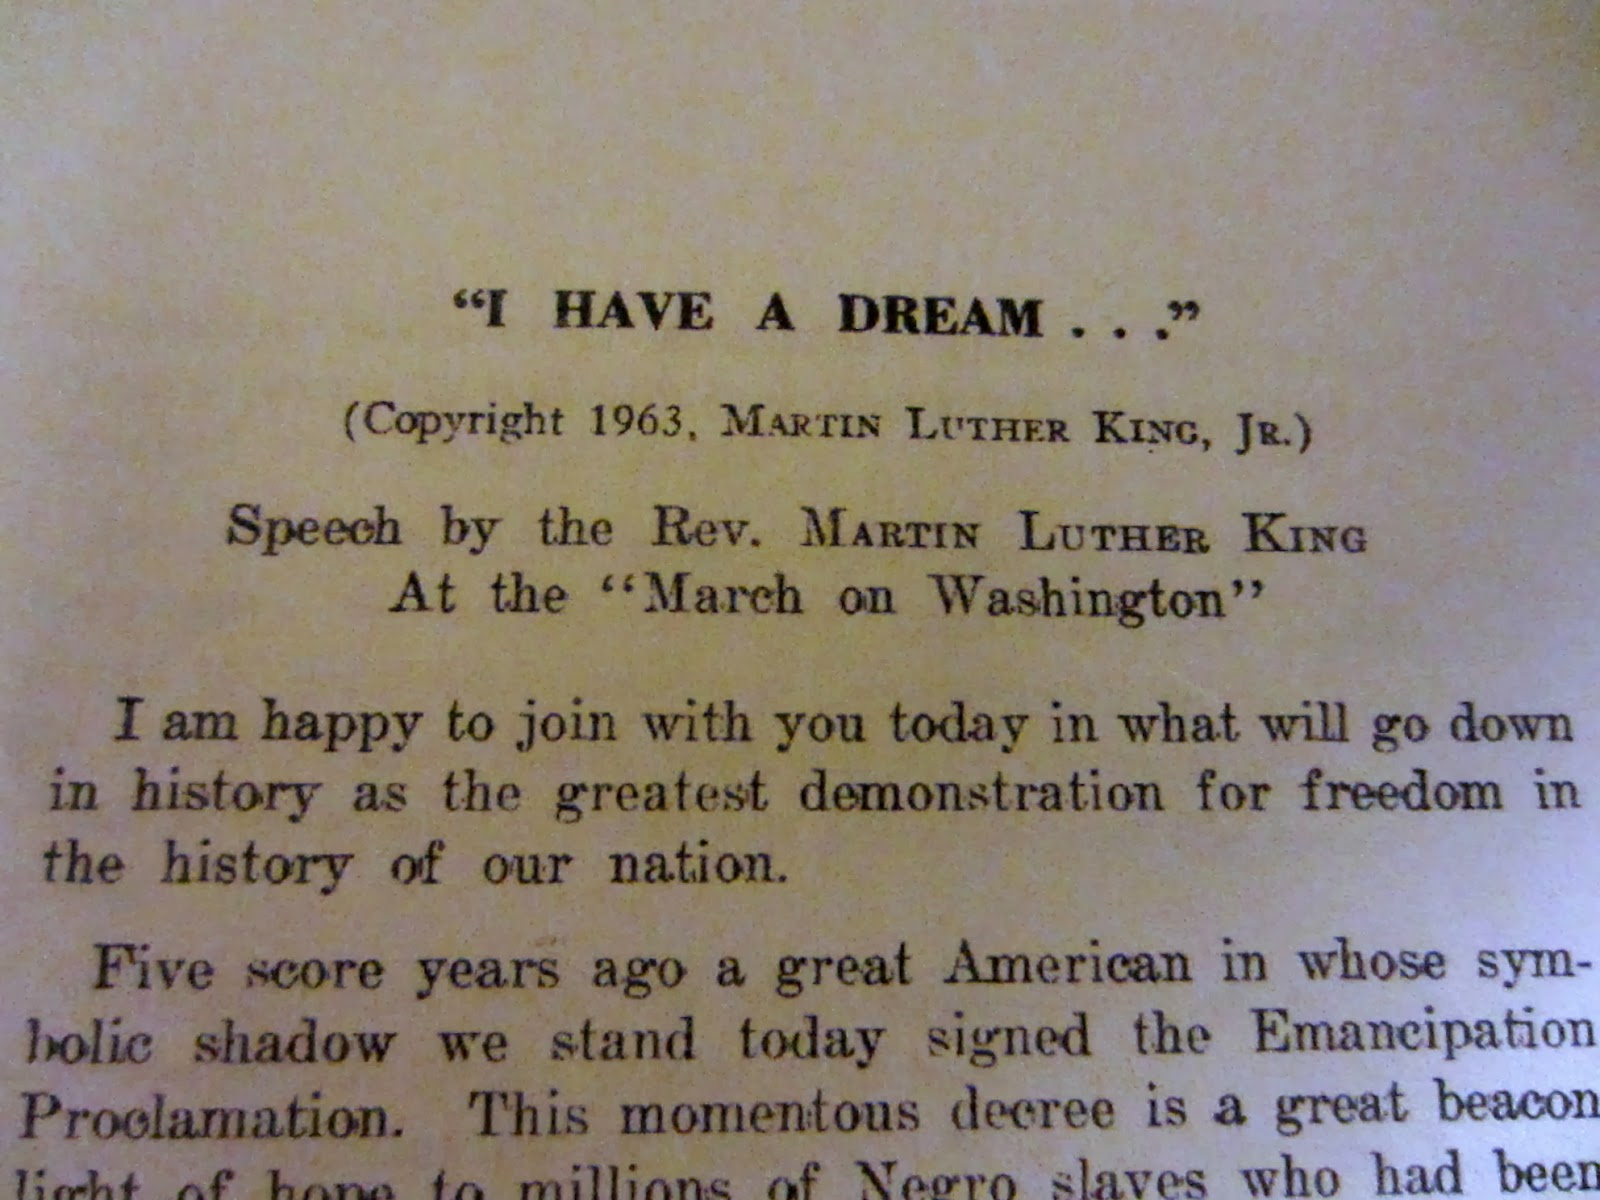 essay speech format martin luther king s have dream and ab In martin luther king jr i have a dream speech he uses  his i have a dream speech in order  martin luther king jr's speech to support.